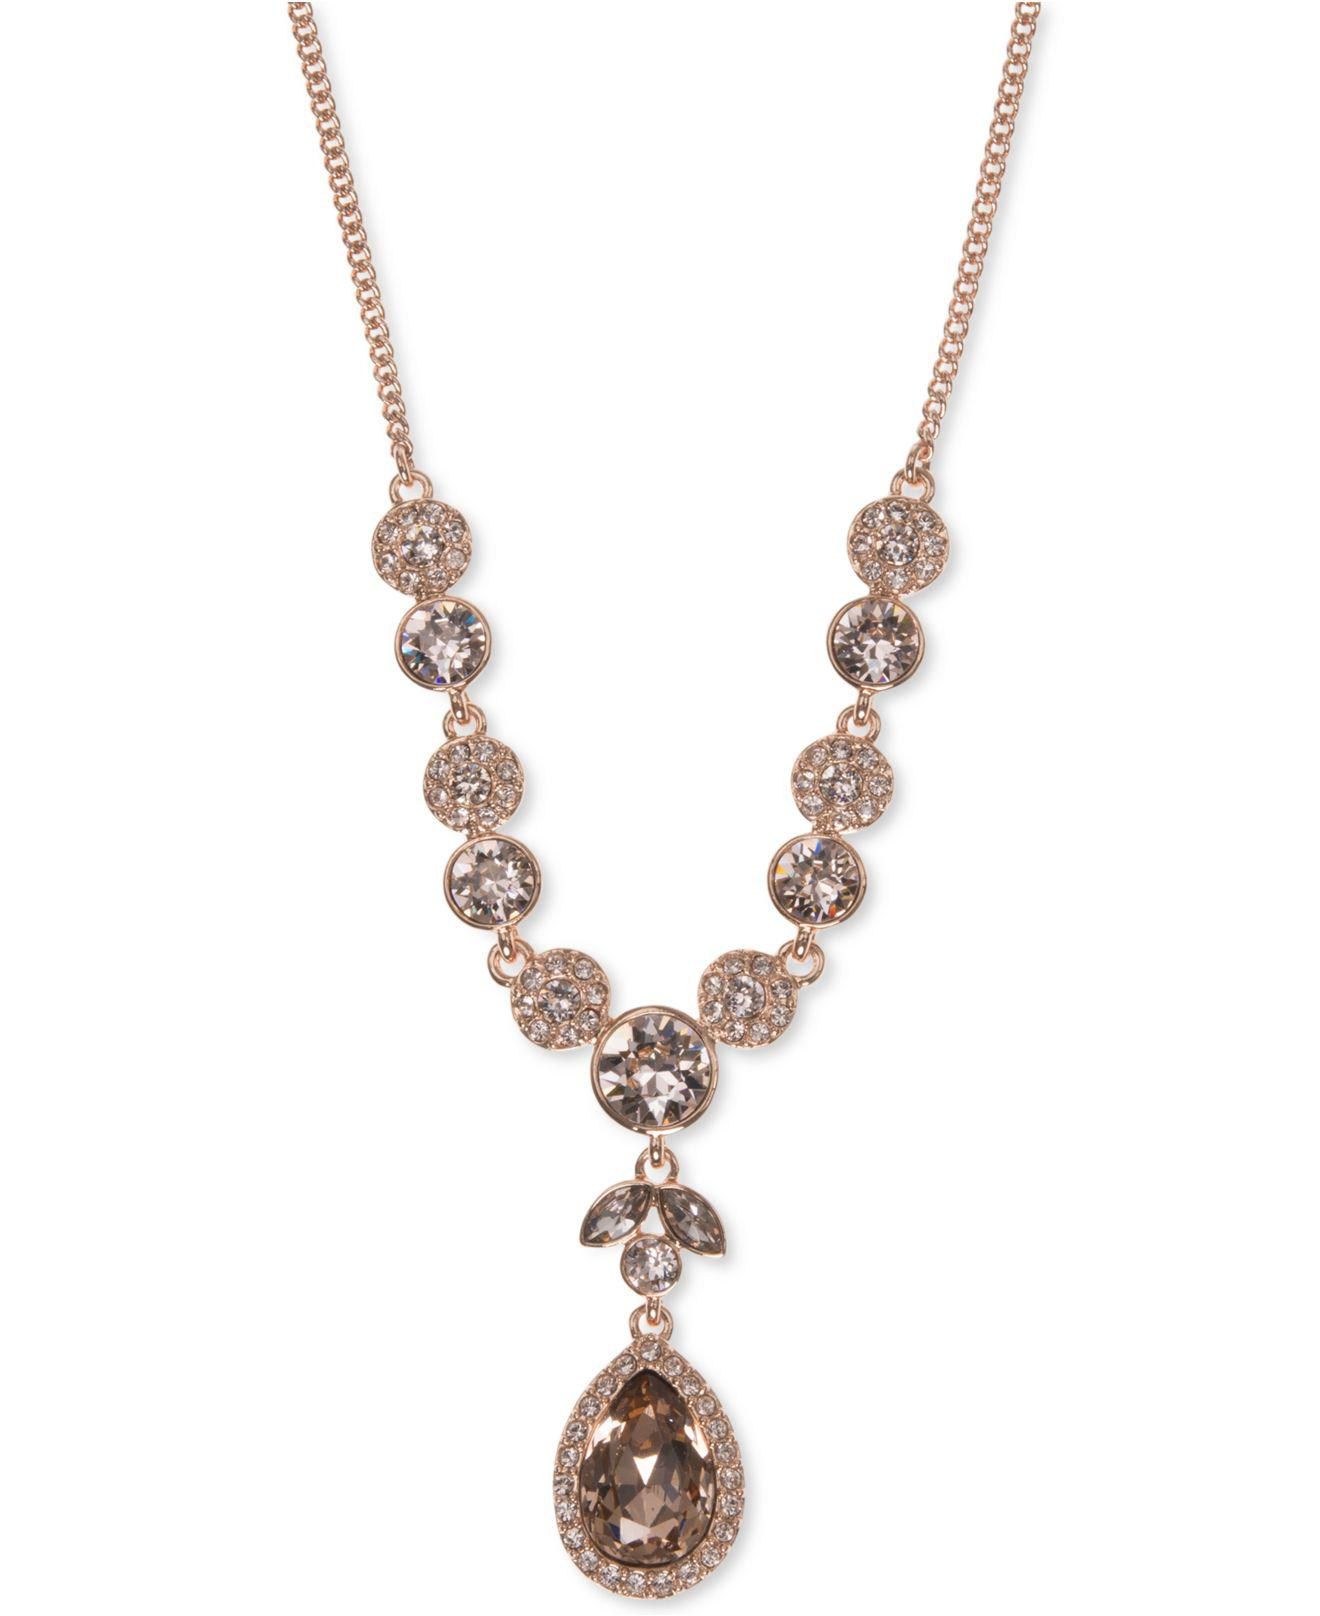 601a6871410b98 Givenchy Rose Gold And Swarovski Crystal Pendant Necklace - Pendant ...